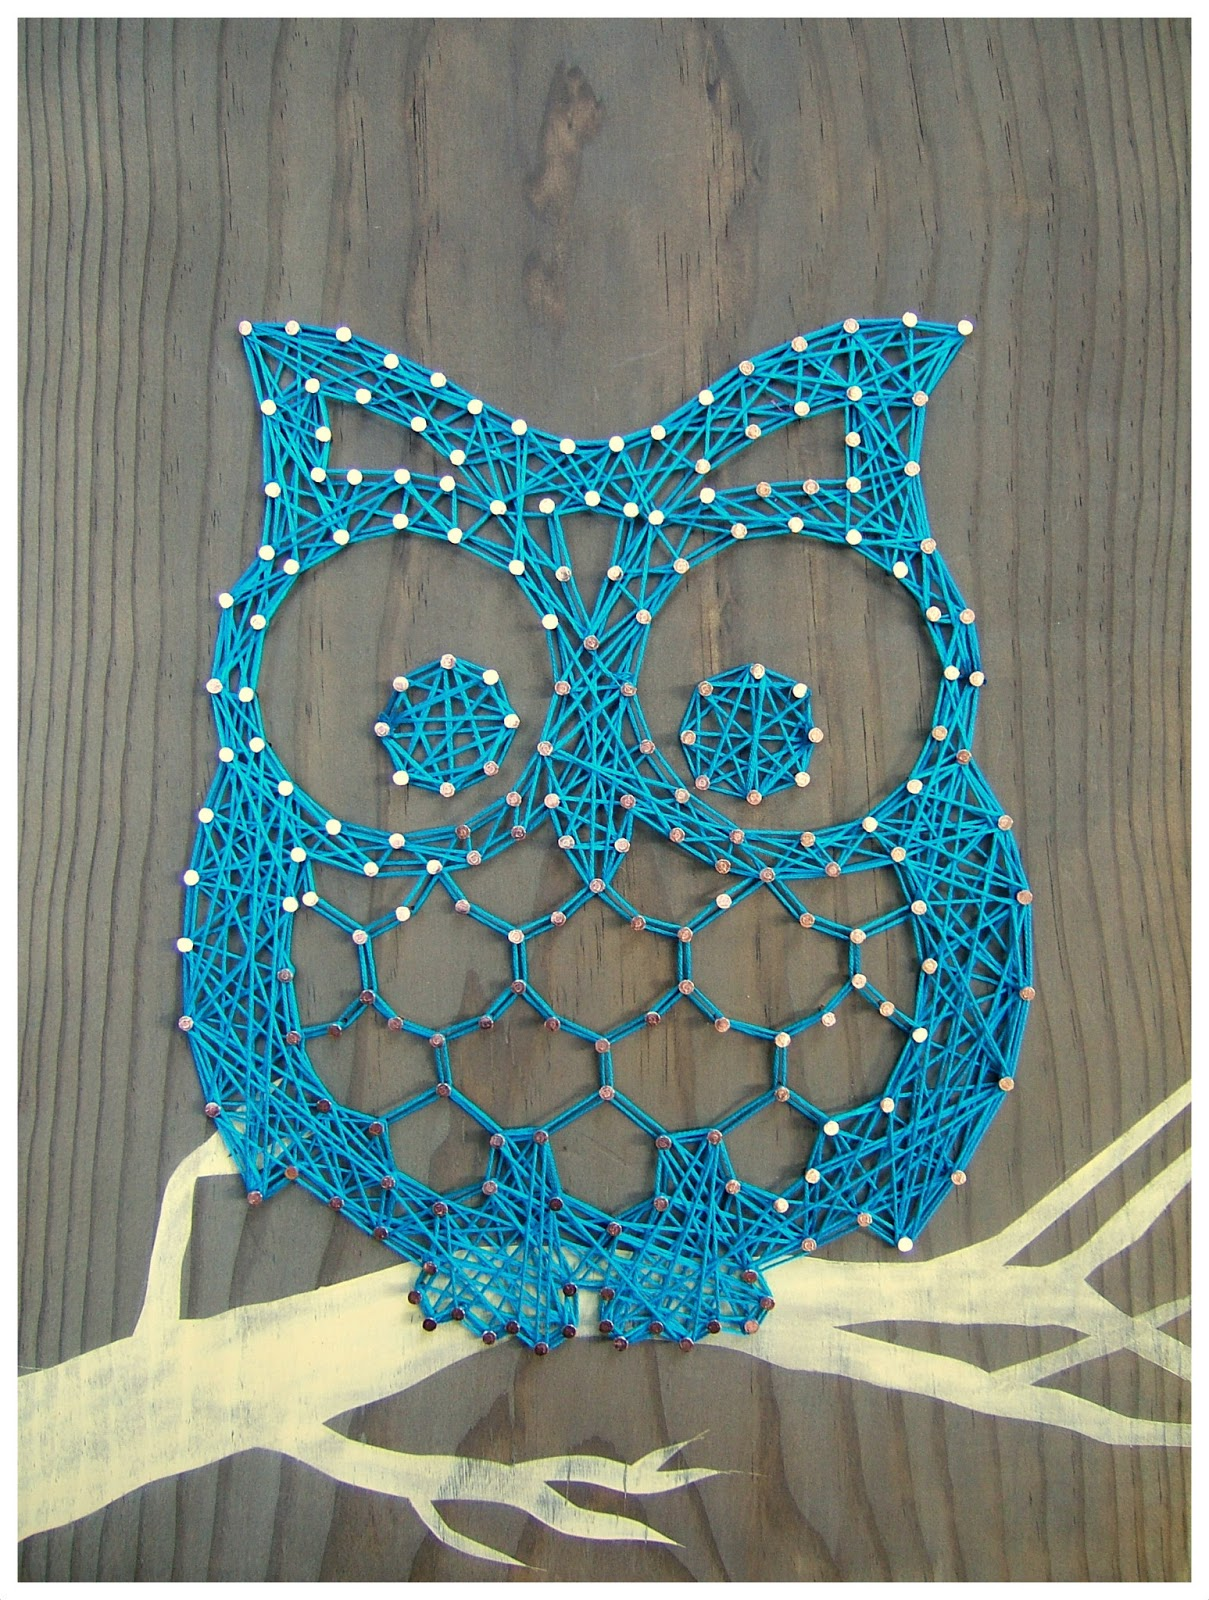 String art otis the owl - String art modele ...